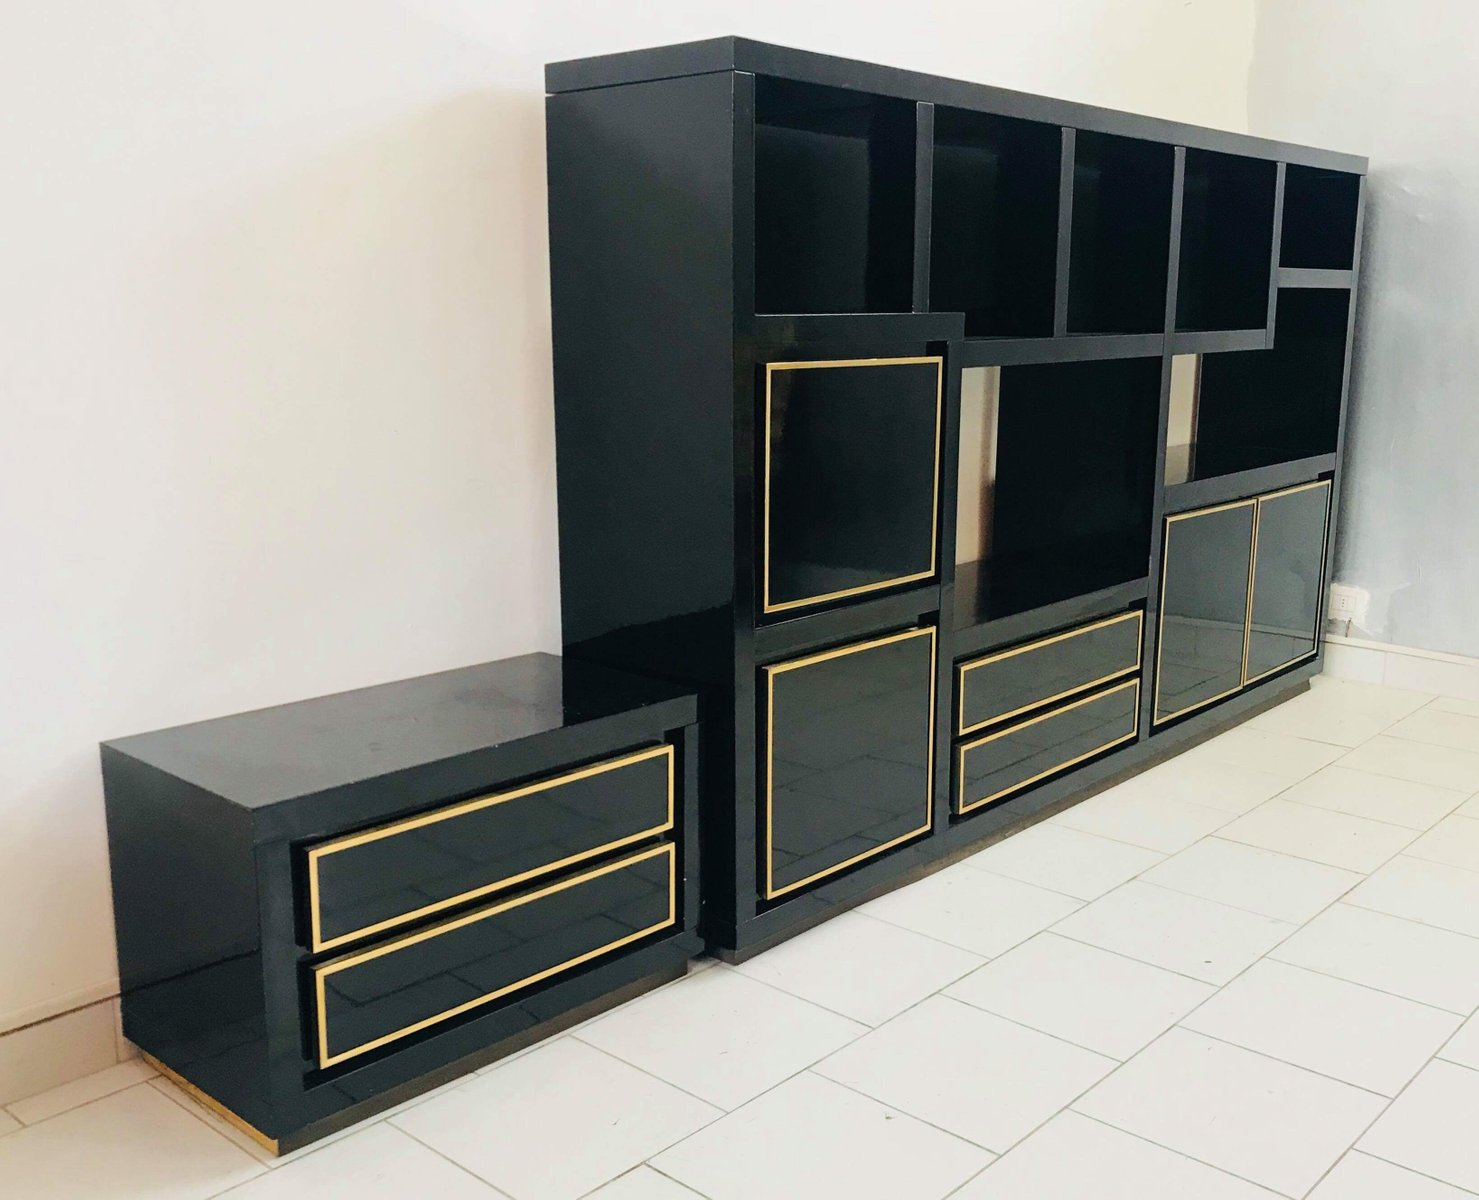 console murale en bois laqu et laiton 1980s en vente sur pamono. Black Bedroom Furniture Sets. Home Design Ideas